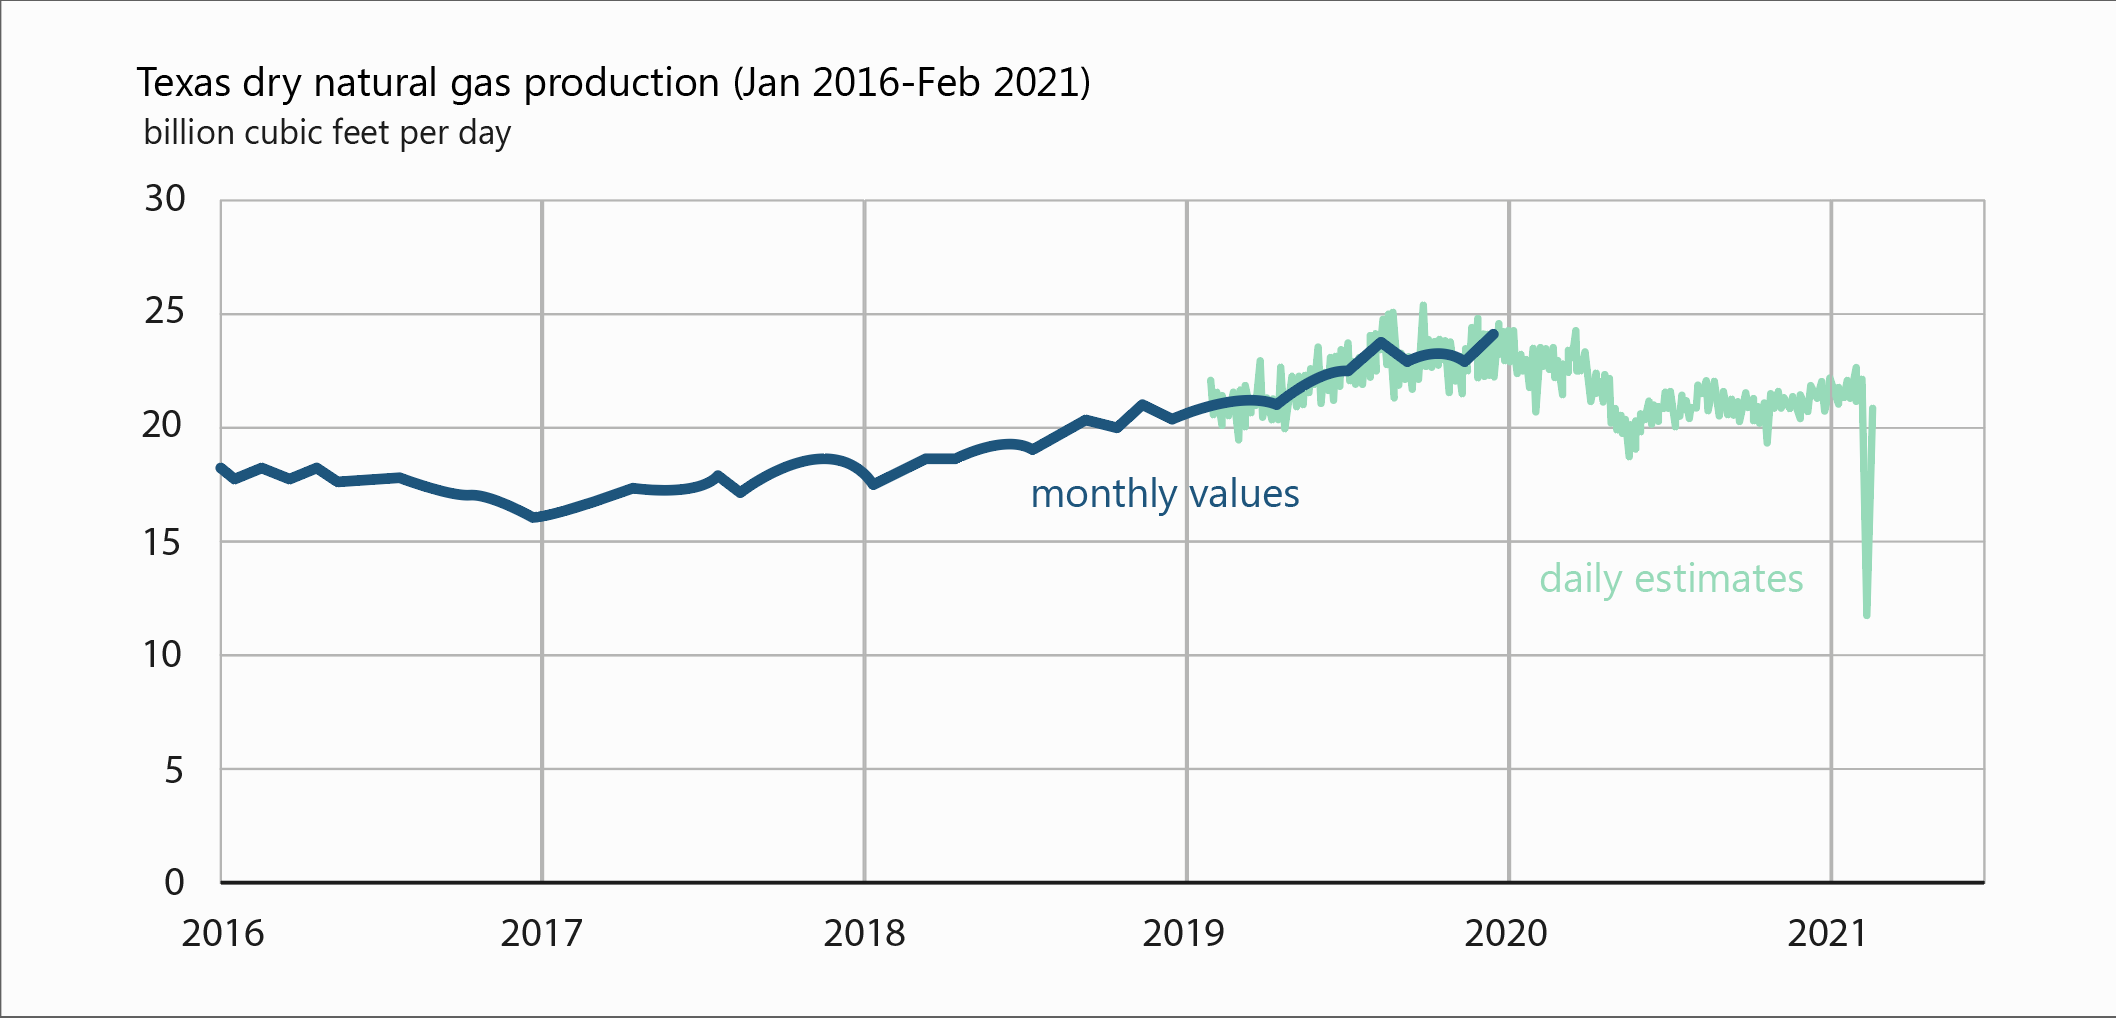 Texas Dry Natural Gas Production (2016-2021)